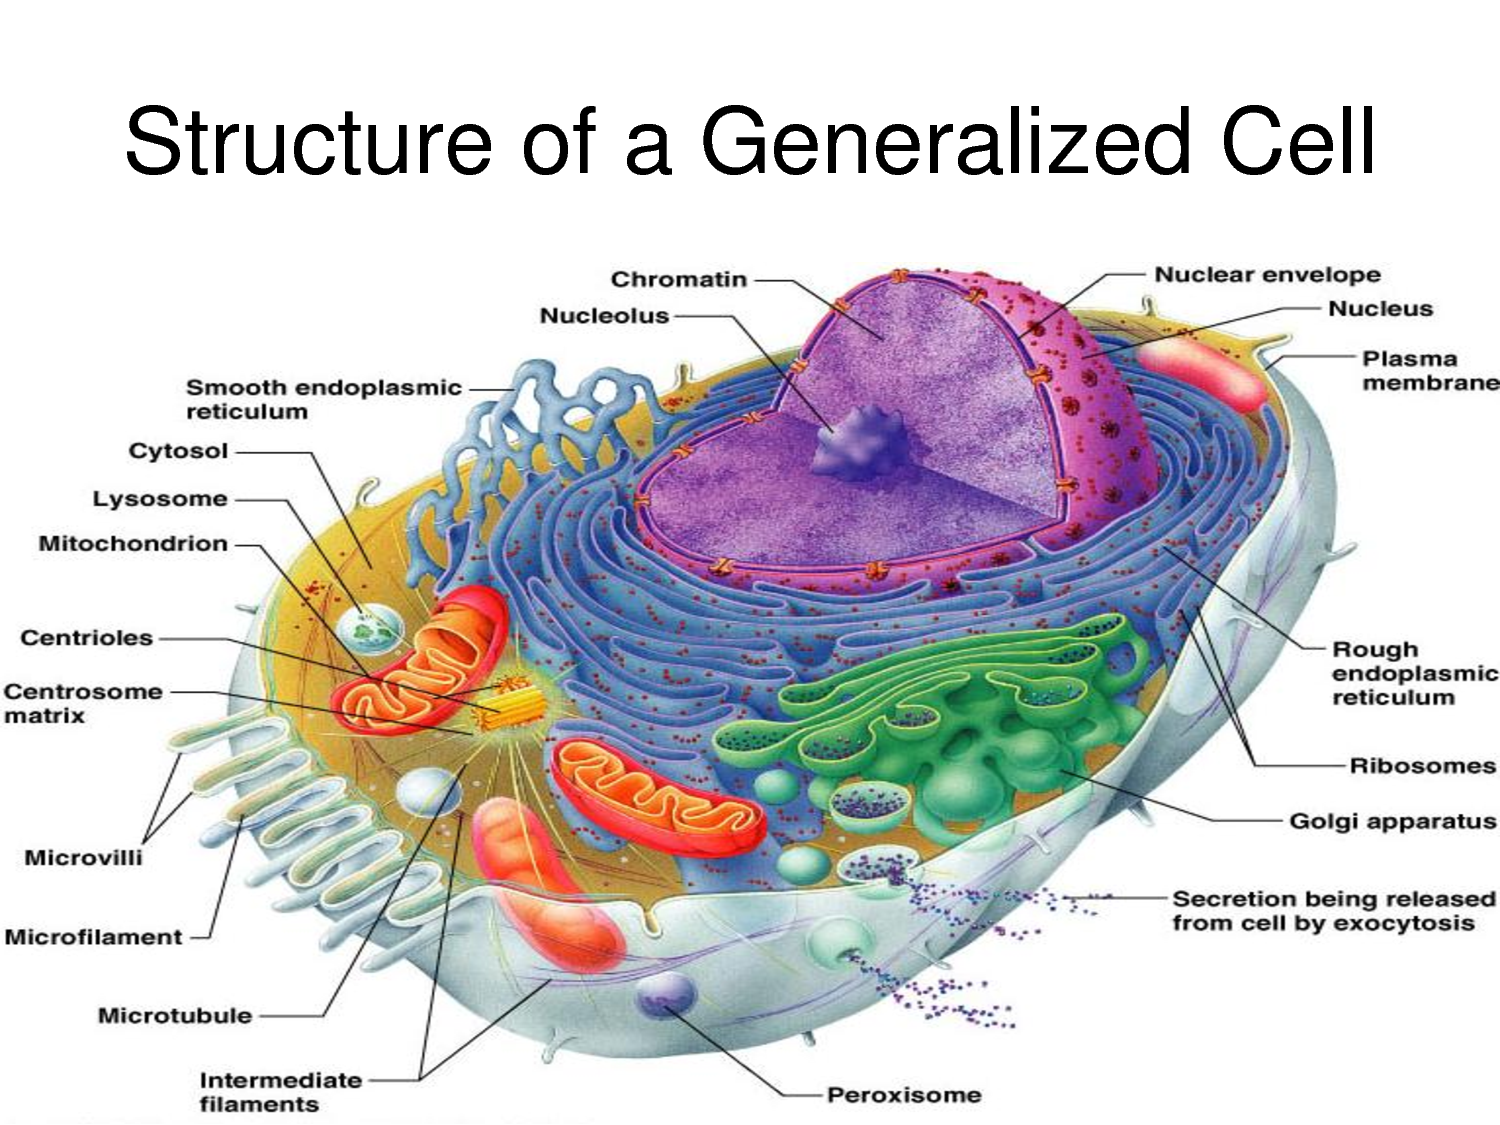 Cell Physiology Pathophysiology And The Relationship To